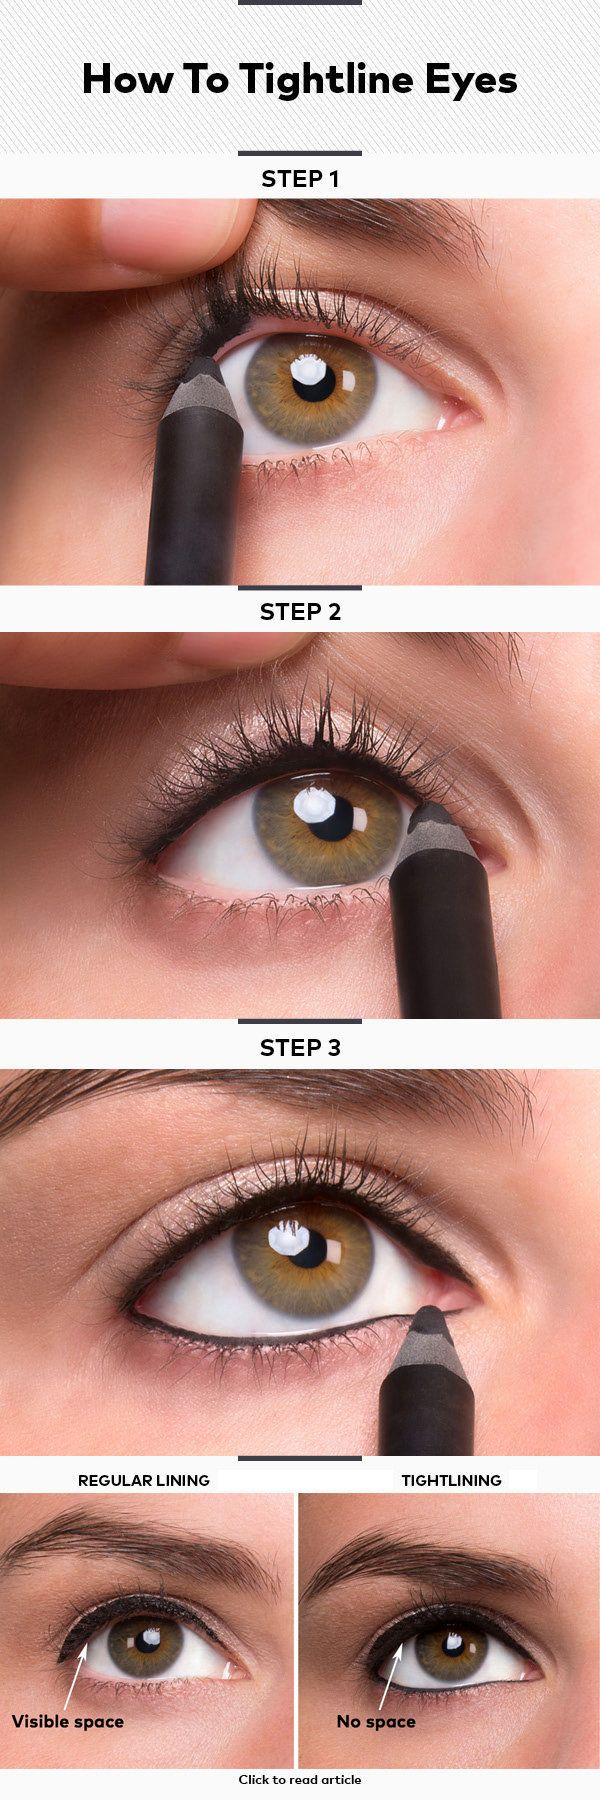 "How To Tightline Eyes ~ Tightlining your eyes (also known as ""invisible eye liner"") is a great way to add subtle definition to your peepers."